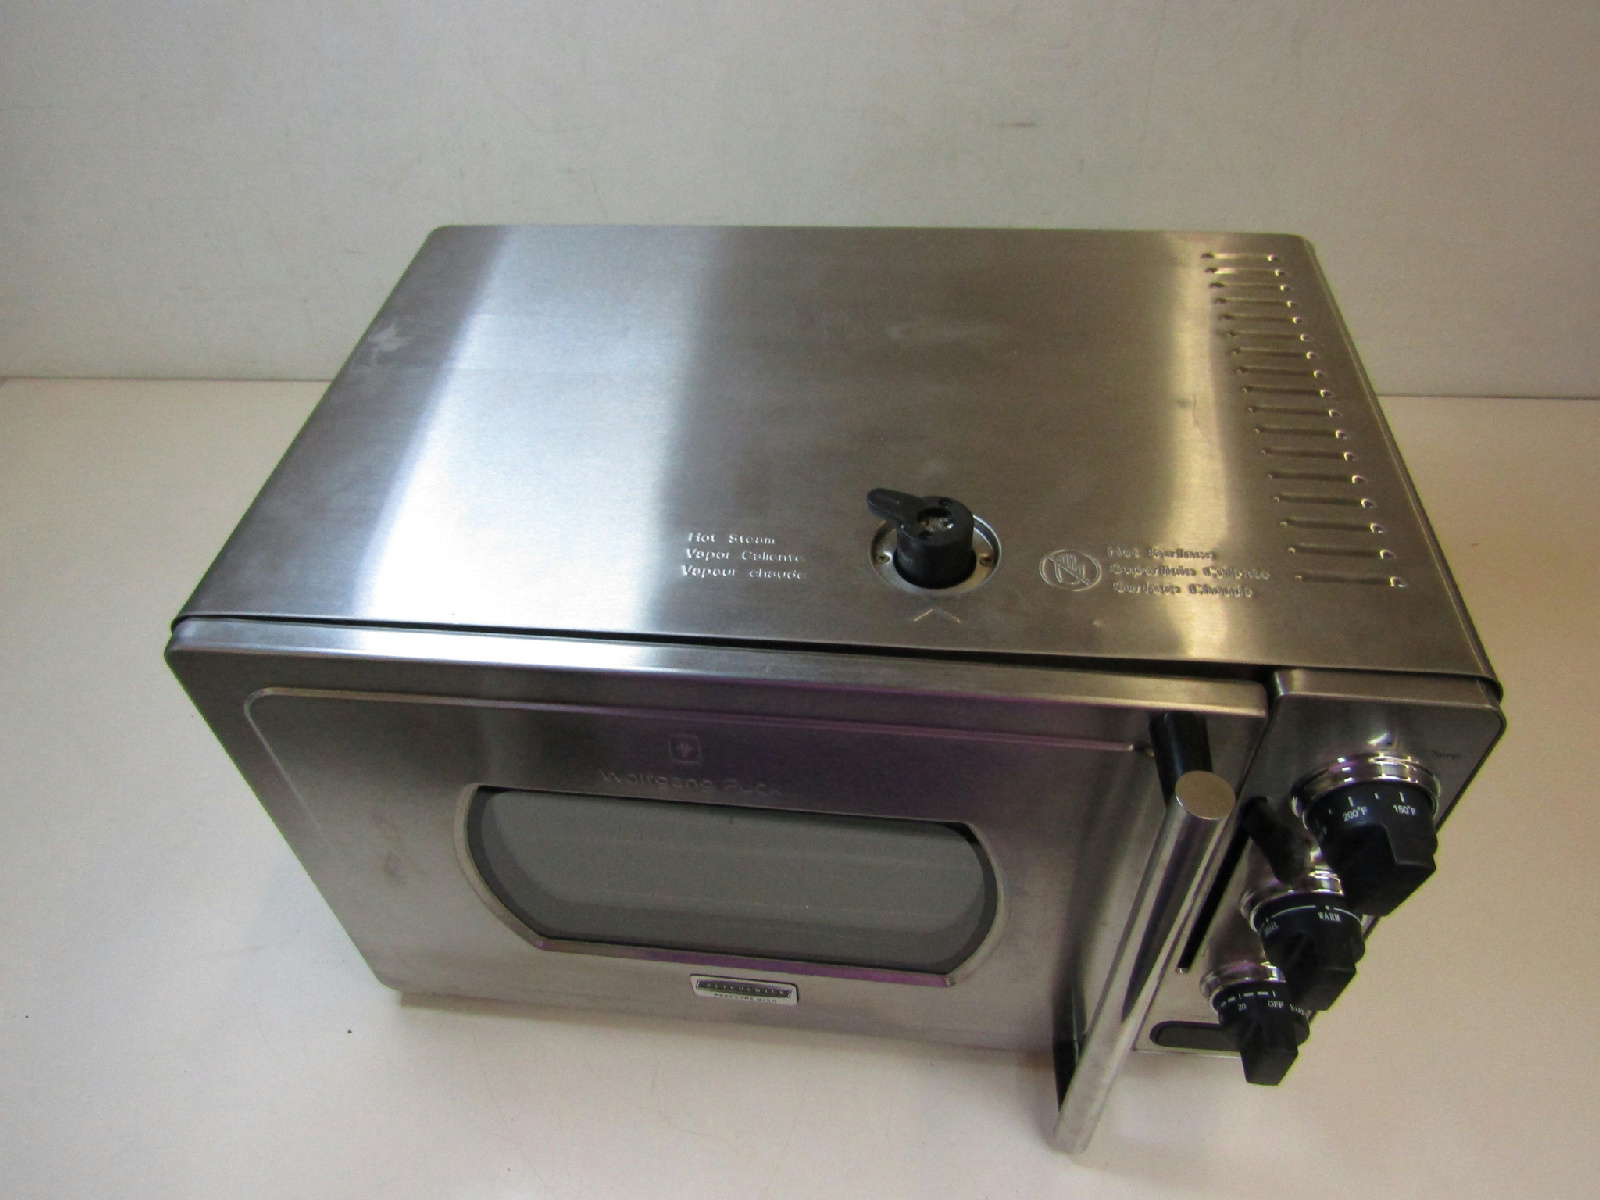 wolfgang puck pressure oven wolfgang puck kitchentek pressure oven wpror1002 b bundle 31353